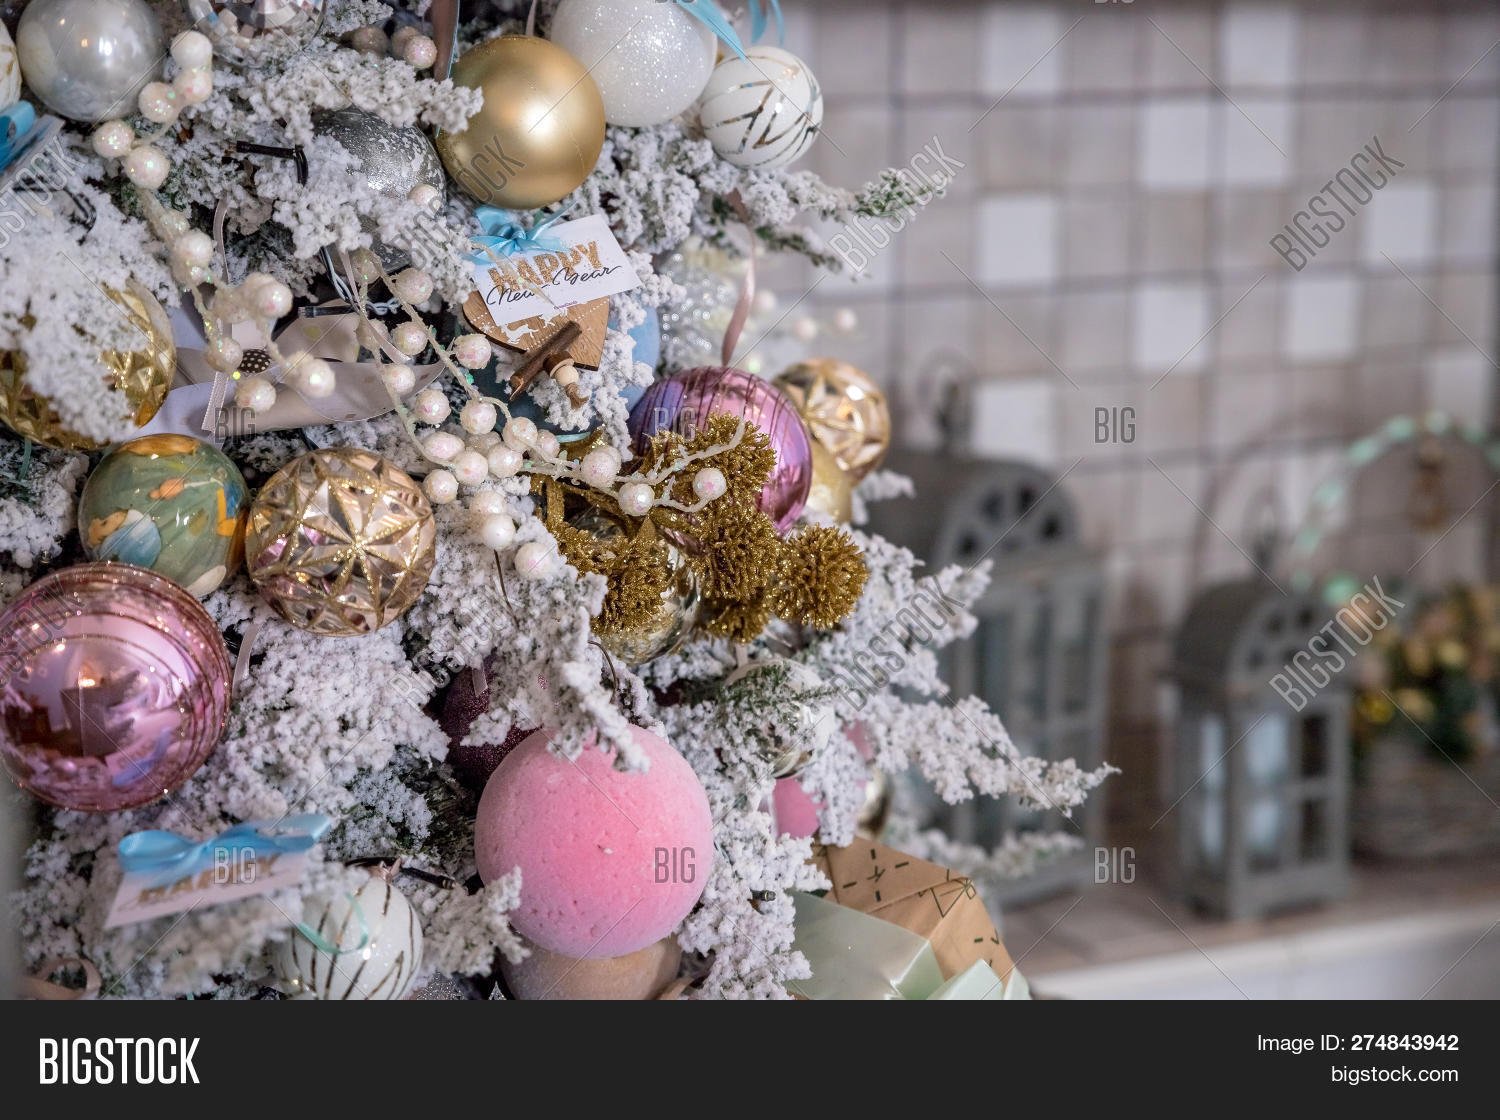 Close Up Of Christmas Tree Decoration With Gold, Silver, Pink And White Tinsel,